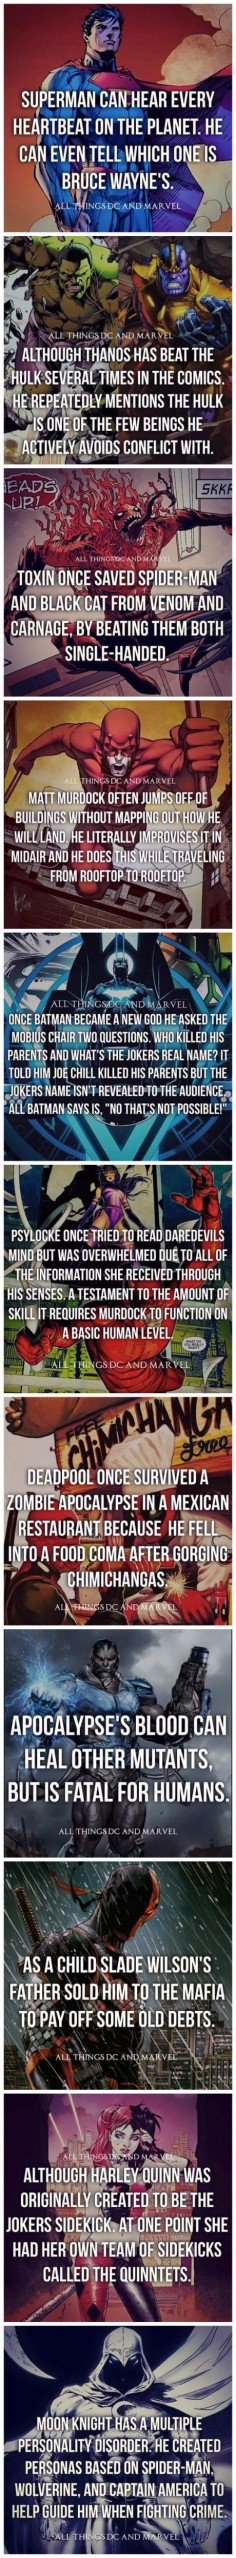 Superhero Facts: Part 1